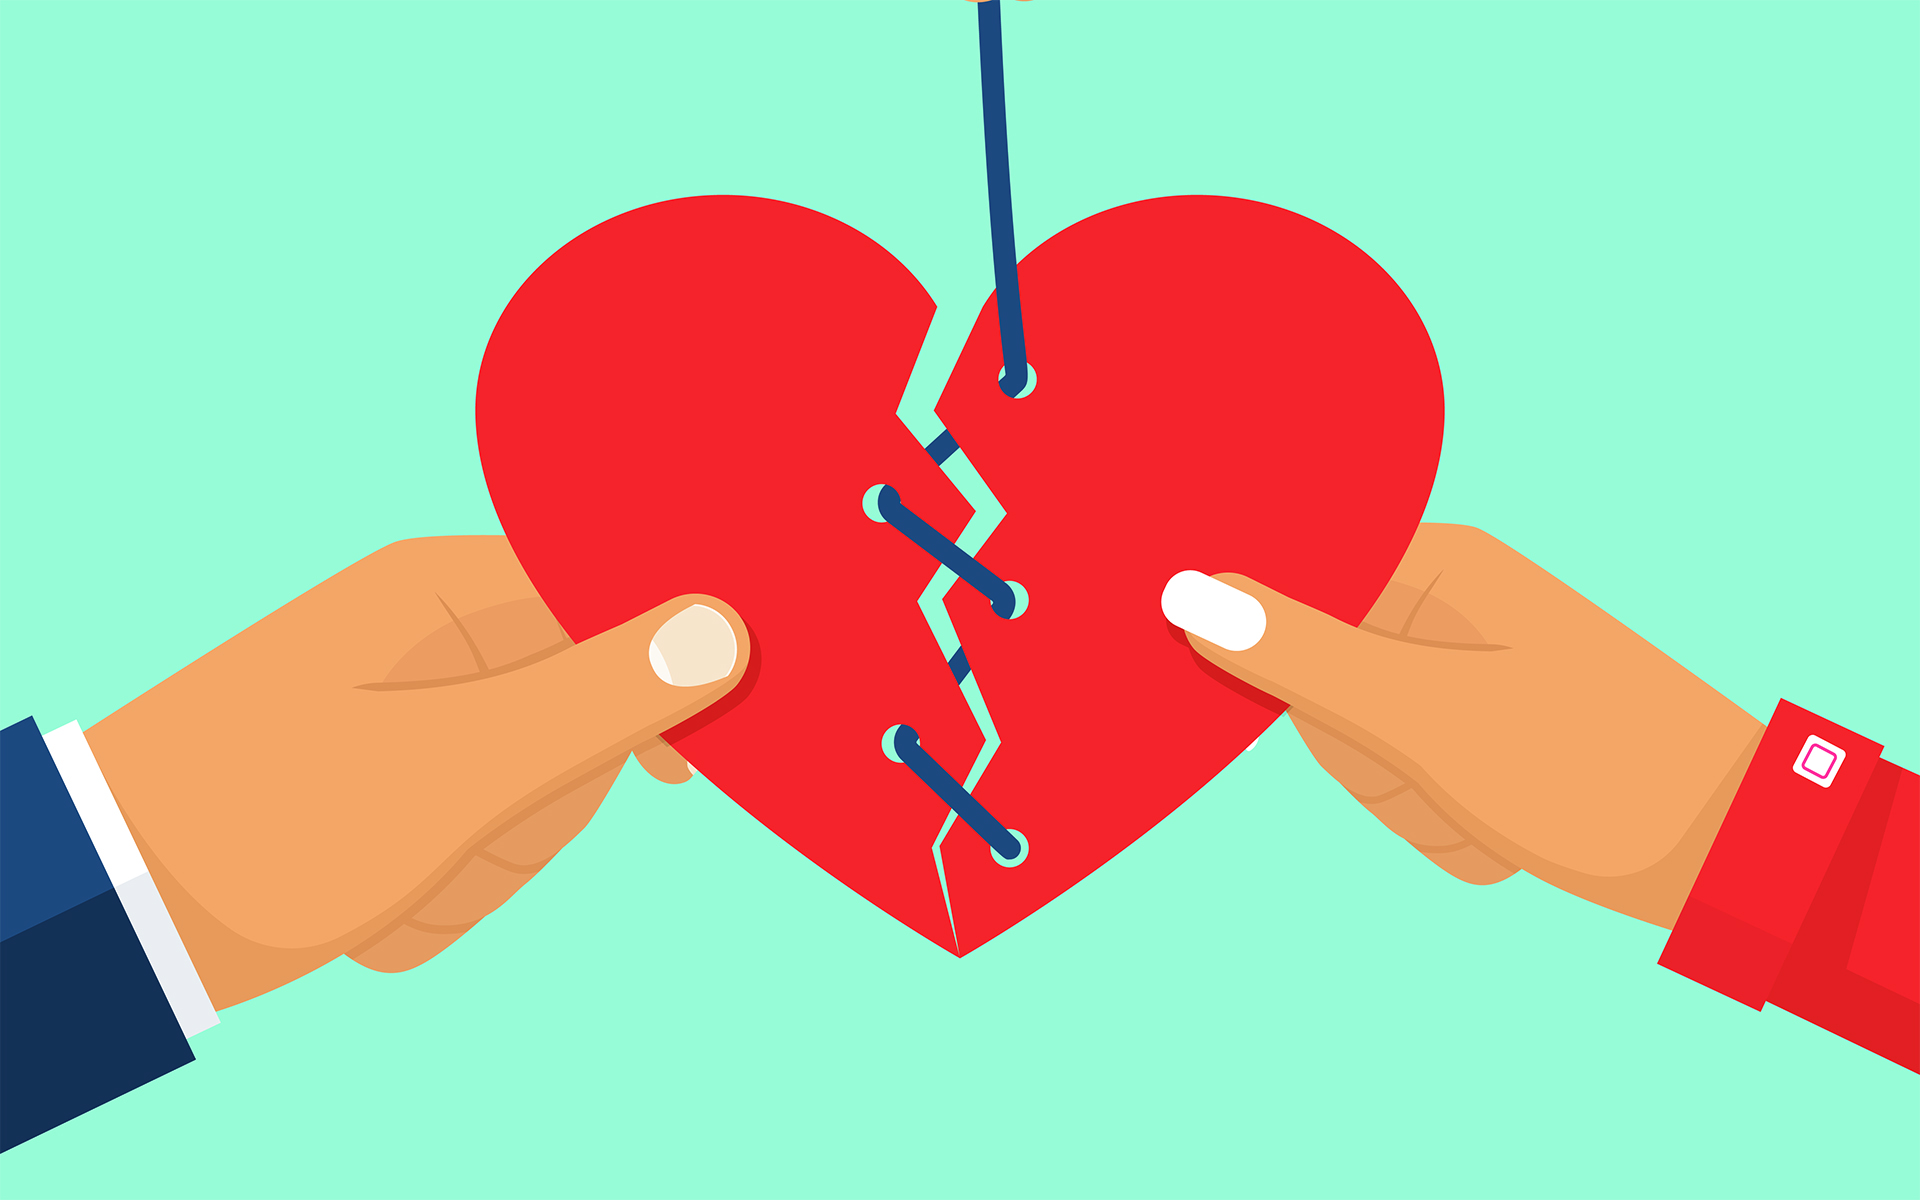 Sharon Salzberg on Why Love will Drive Out Hate - Image of a broken heart held by two hands being sewn back together